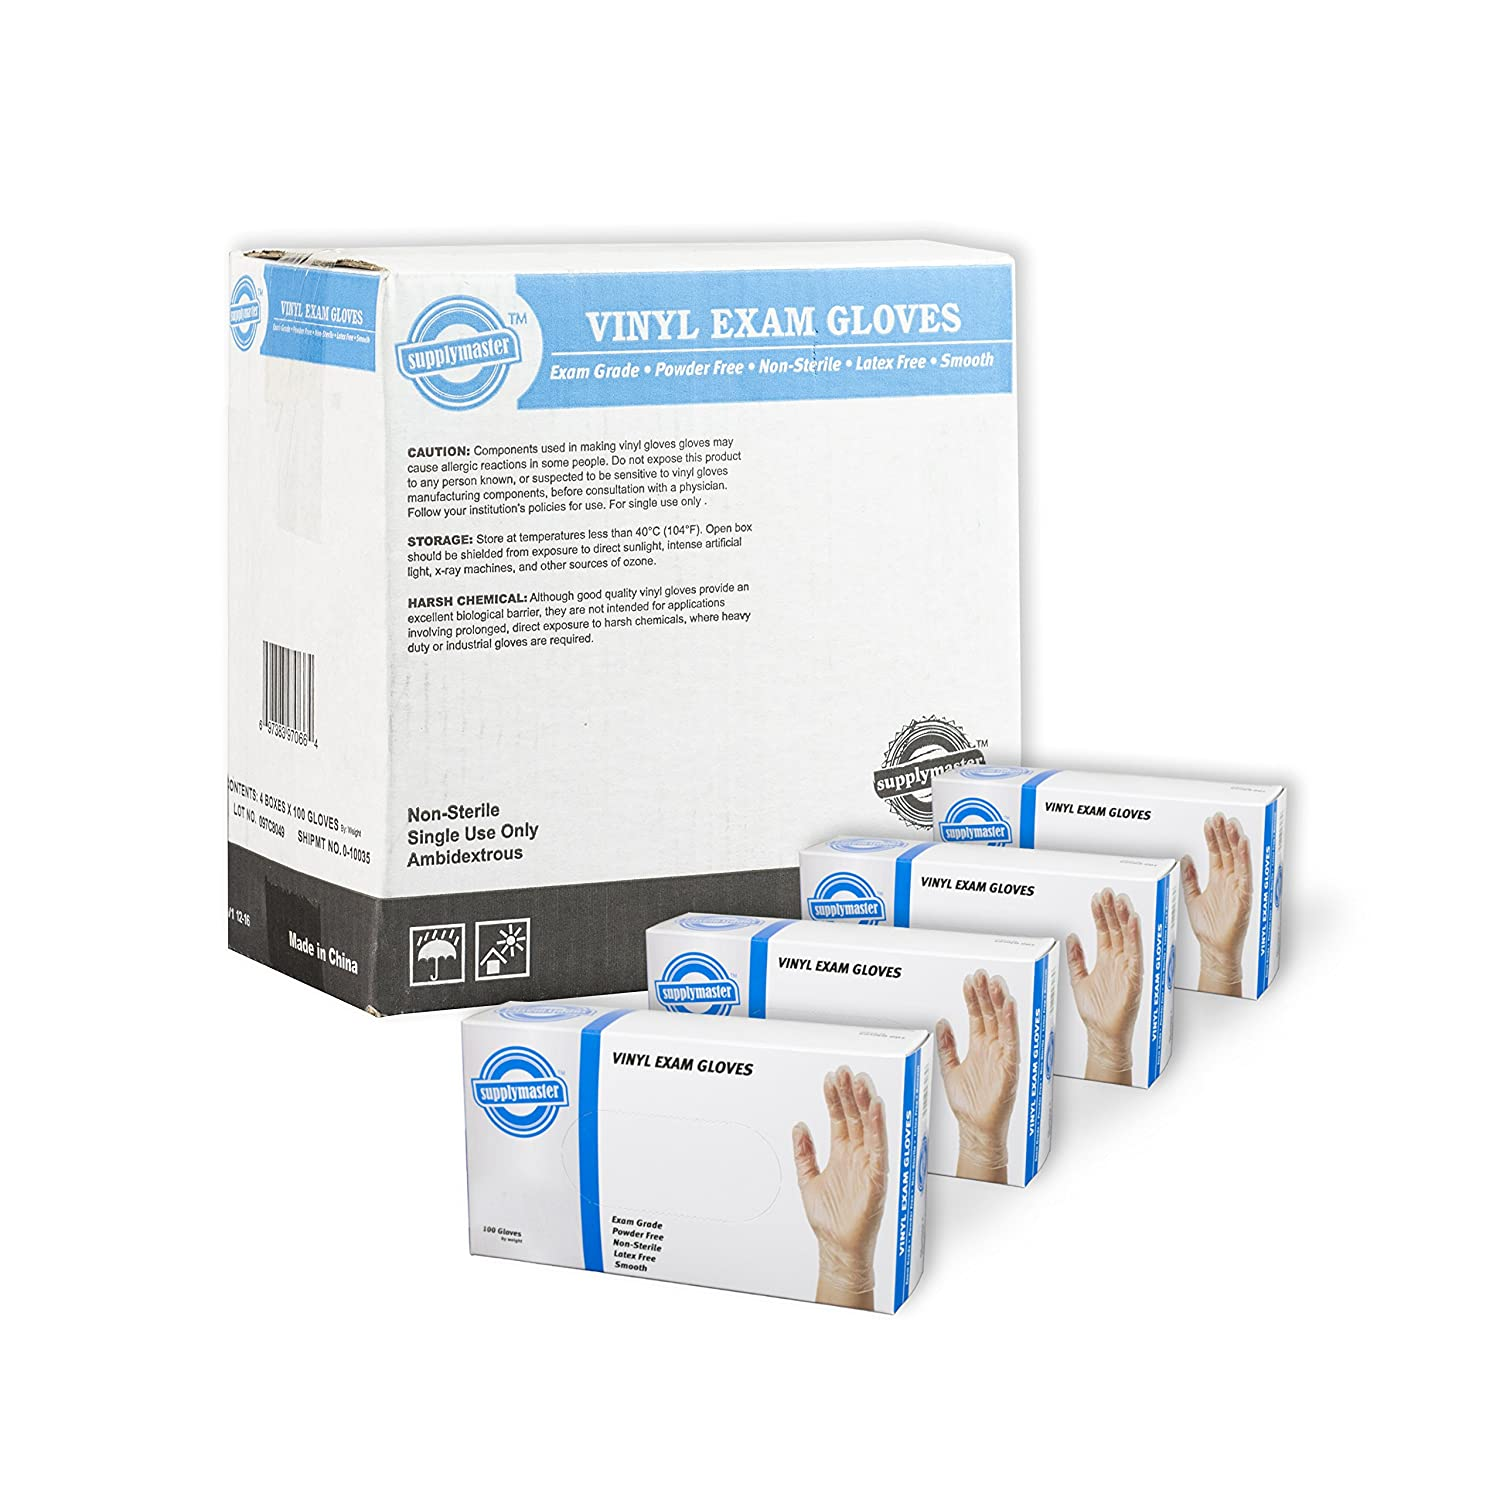 SupplyMaster SMCVE4L Vinyl Exam Disposable Gloves - 4 Mil, Powder Free, Non-Sterile, Latex Free, Smooth, Ambidextrous, Large, Case of 400